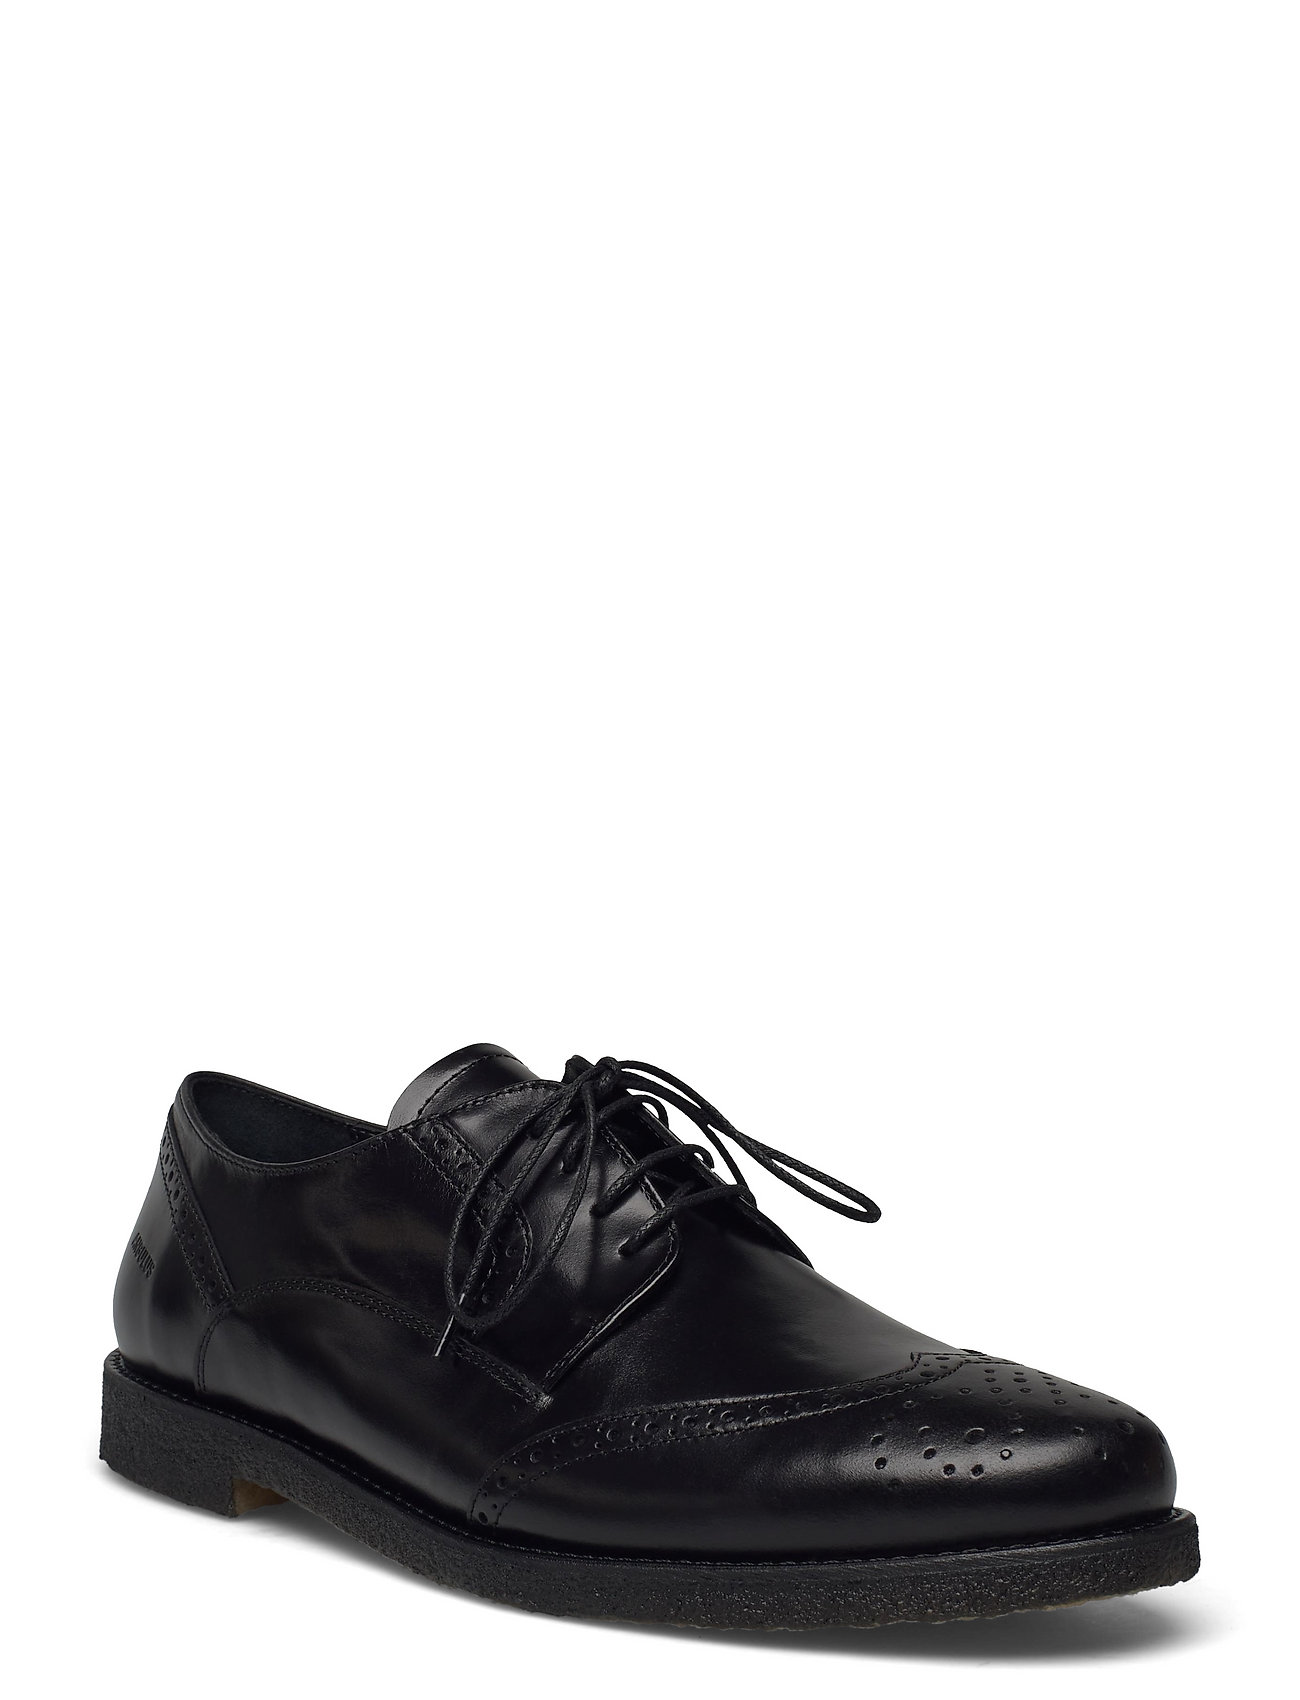 Shoes - Flat - With Lace Shoes Business Laced Shoes Sort ANGULUS